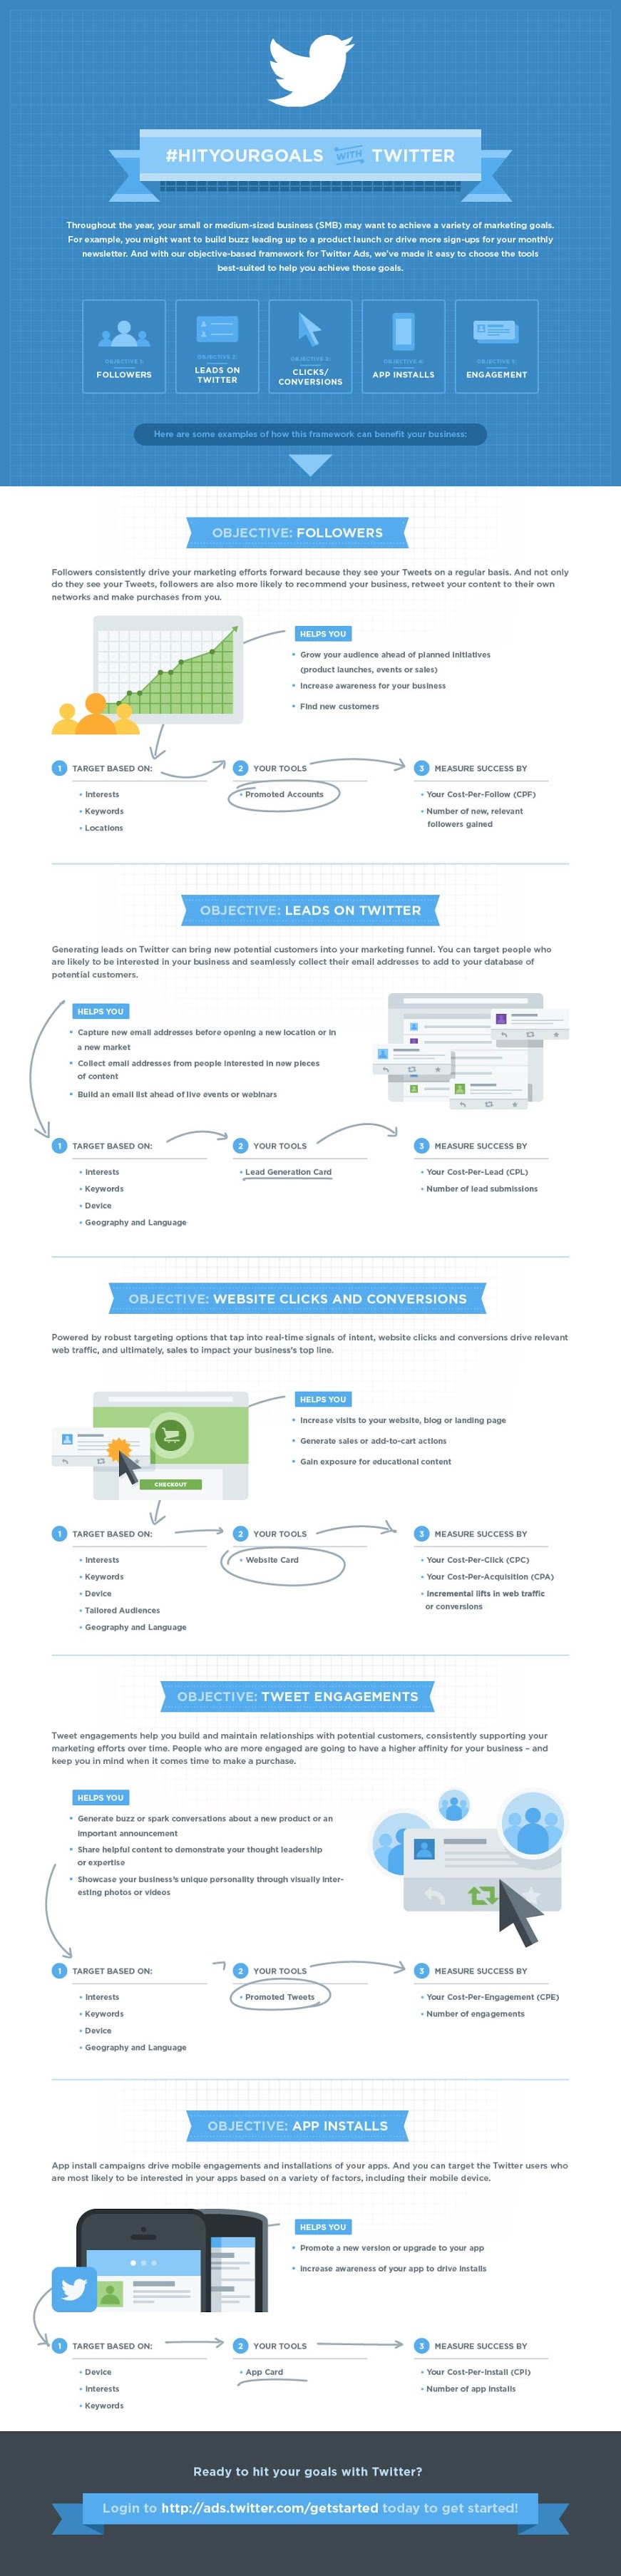 Hitting Your Marketing Goals With Twitter - #infographic #SocialMedia #Twitter - How to make successful online campaigns with Twitter